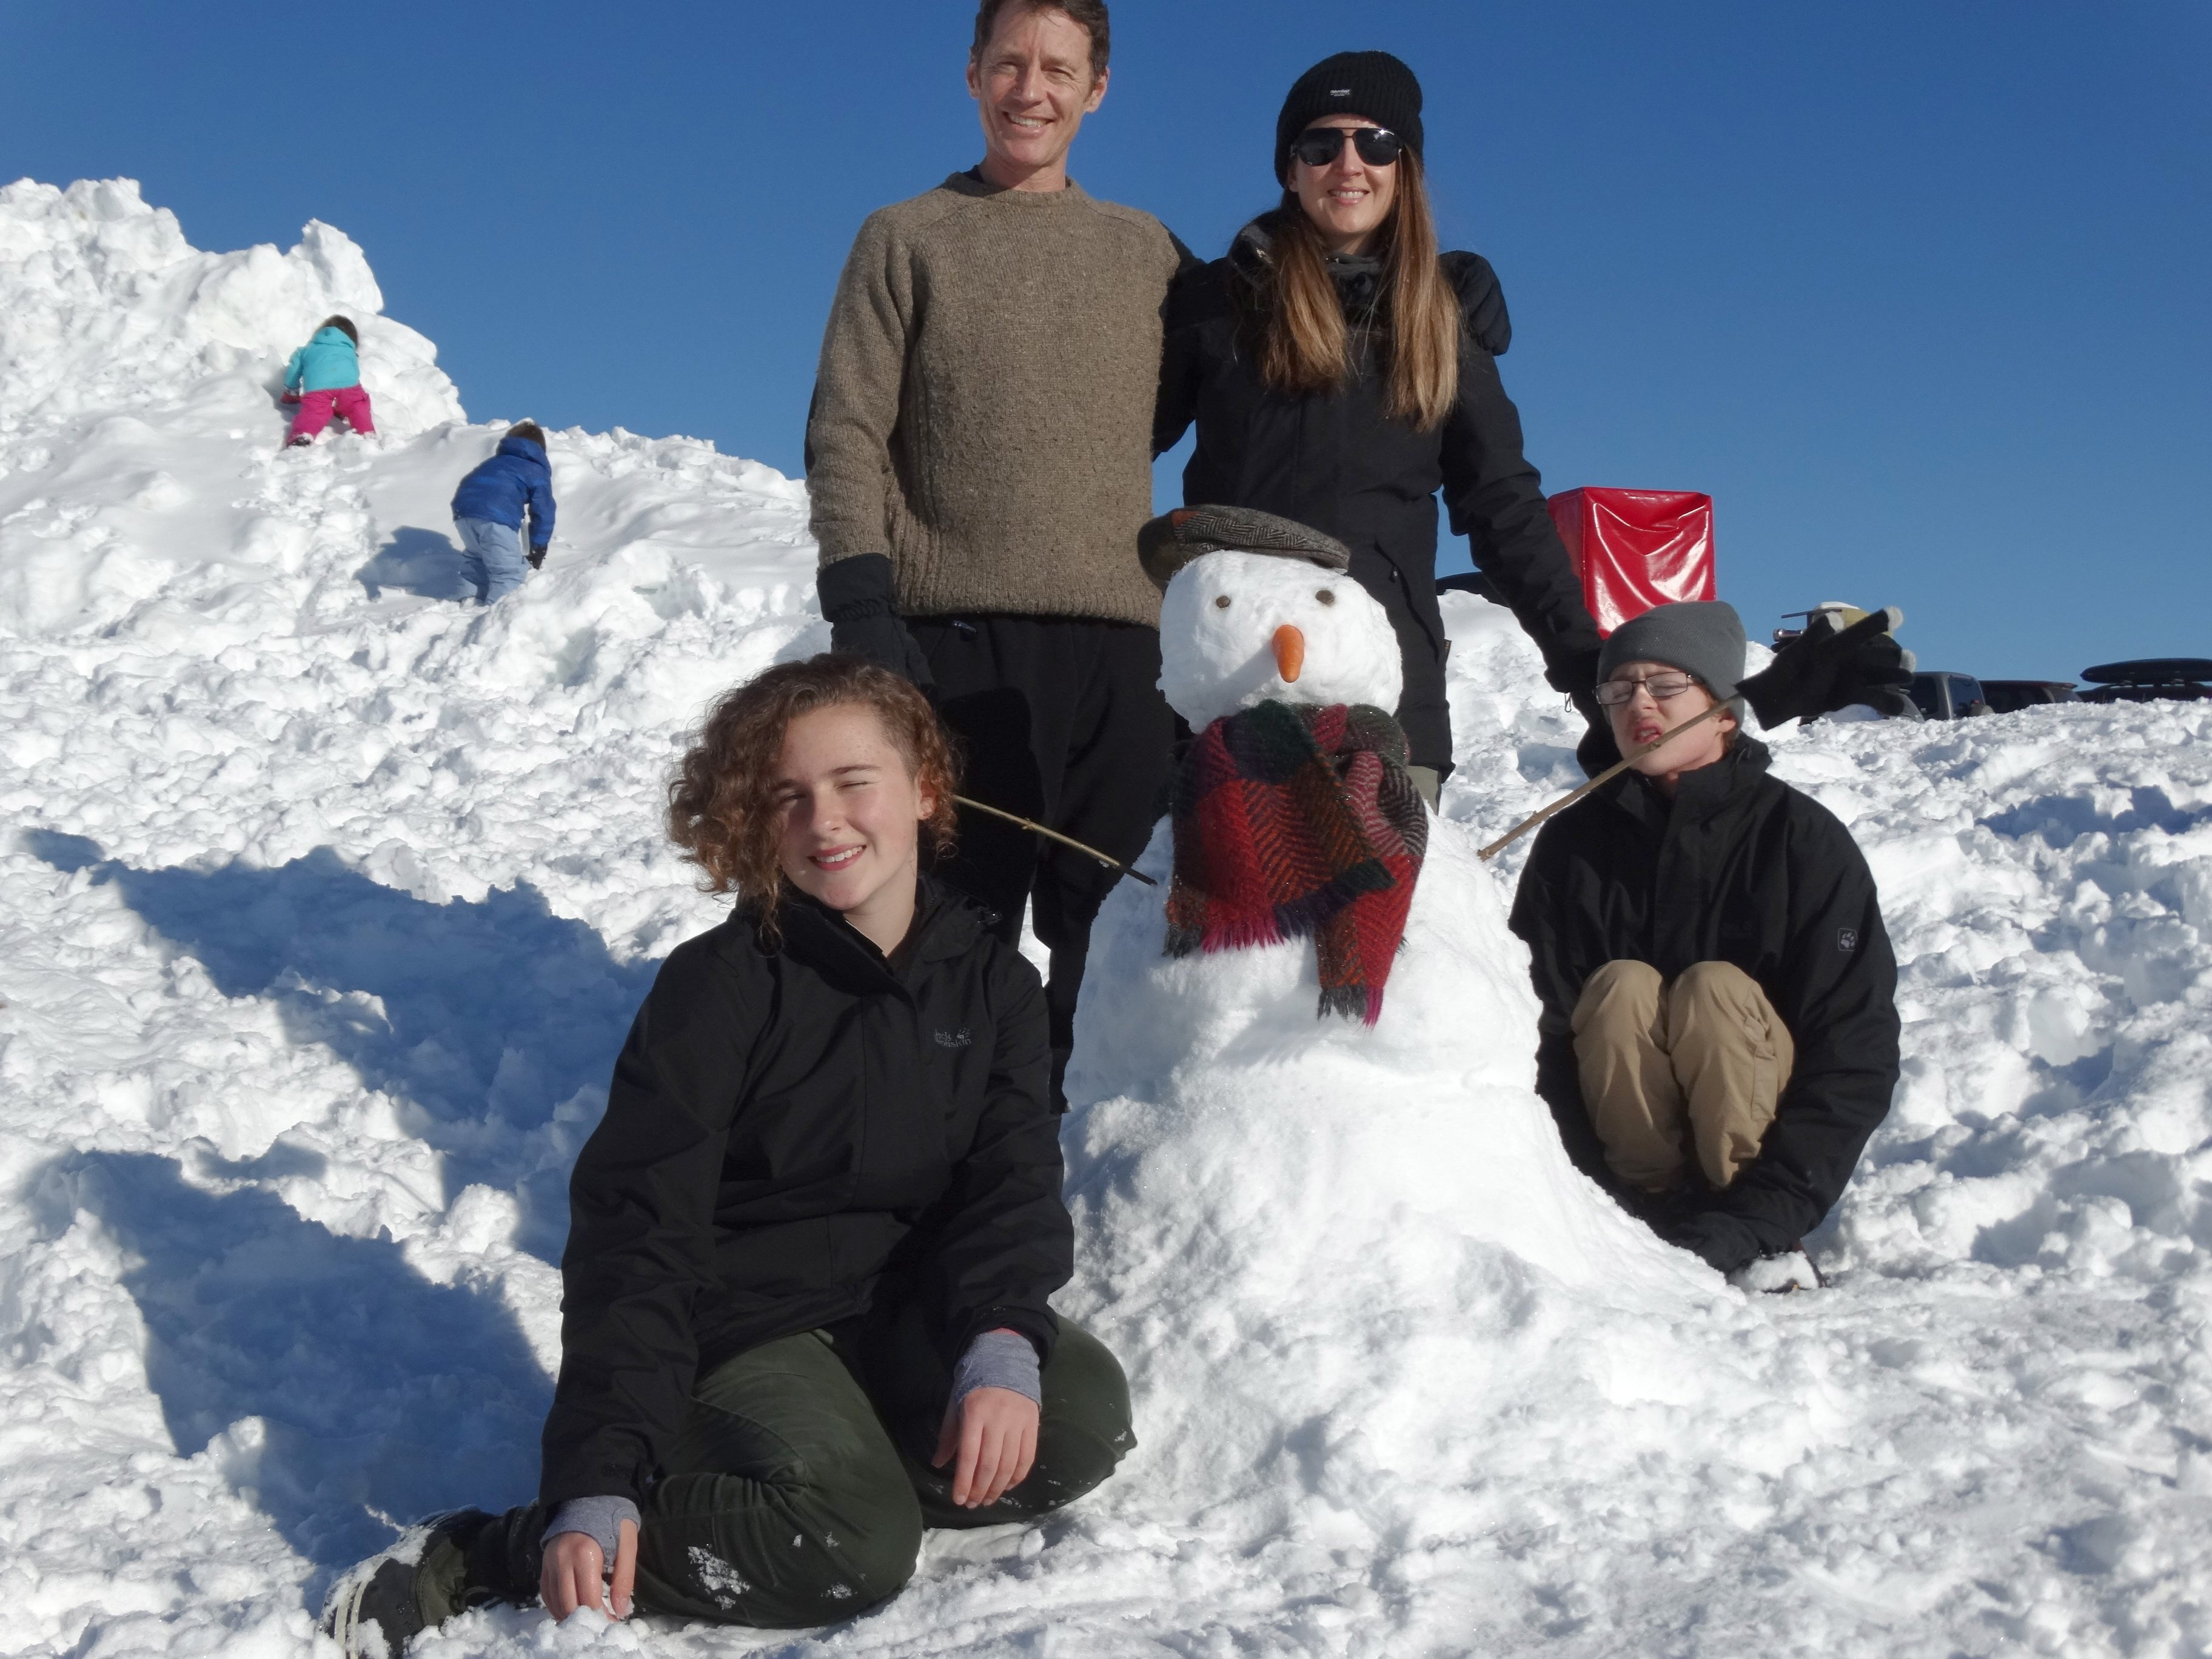 The Auckland family of Kaya (14), Debbie, Fionn (16) and Justin took advantage of freshly fallen...